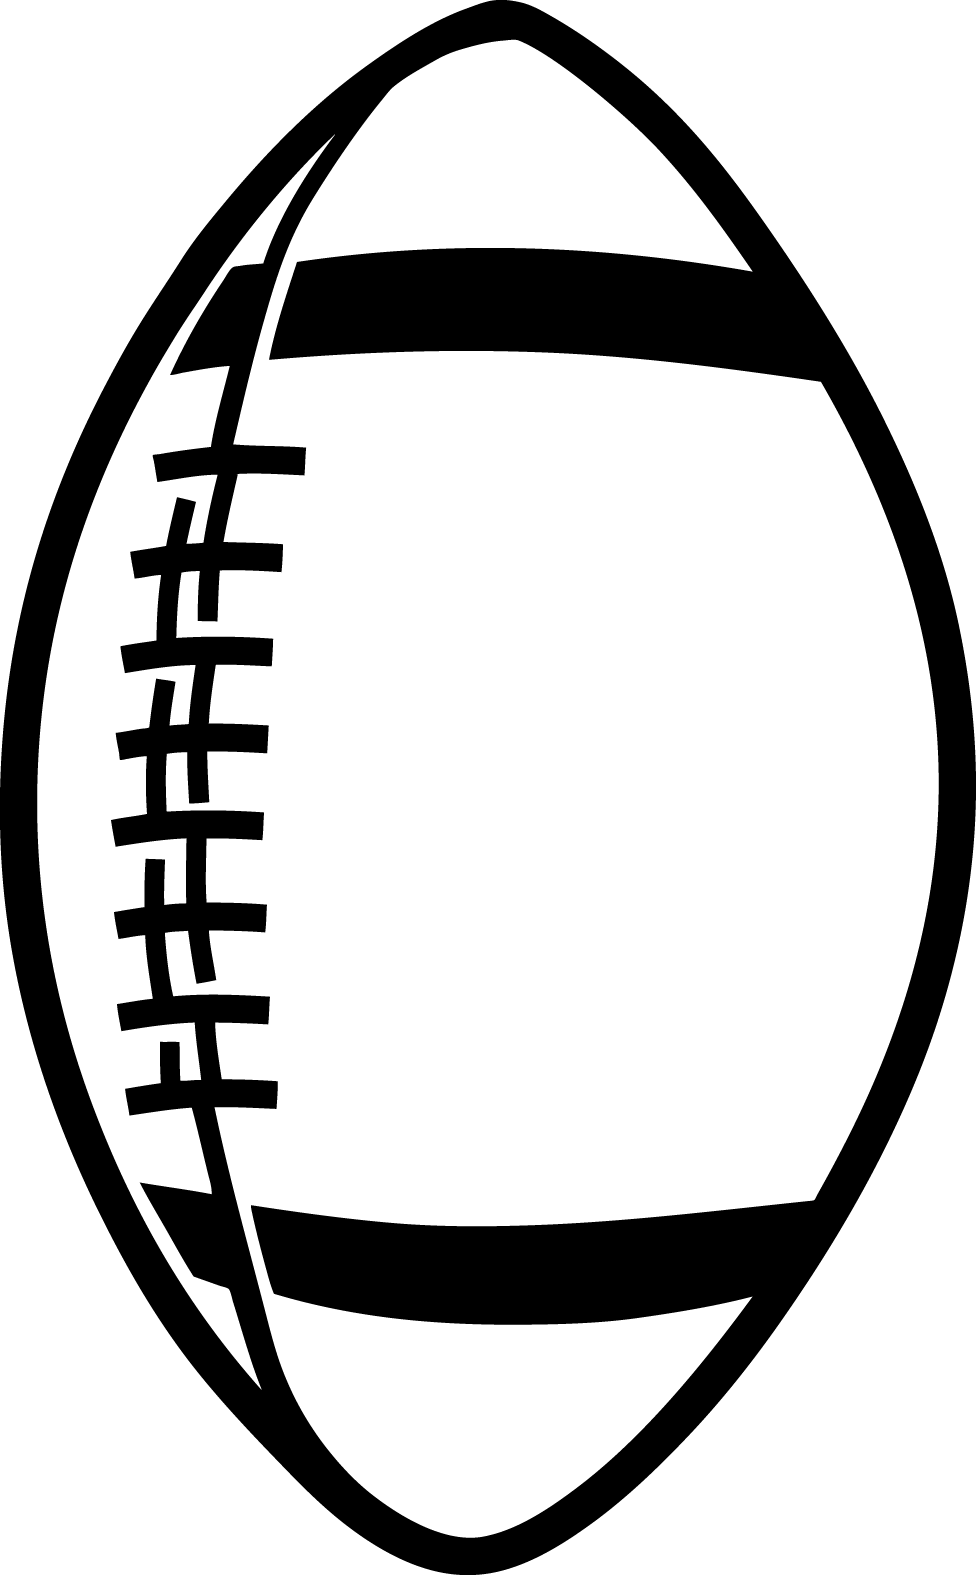 Drawing clipart football Football outline football outline clipart